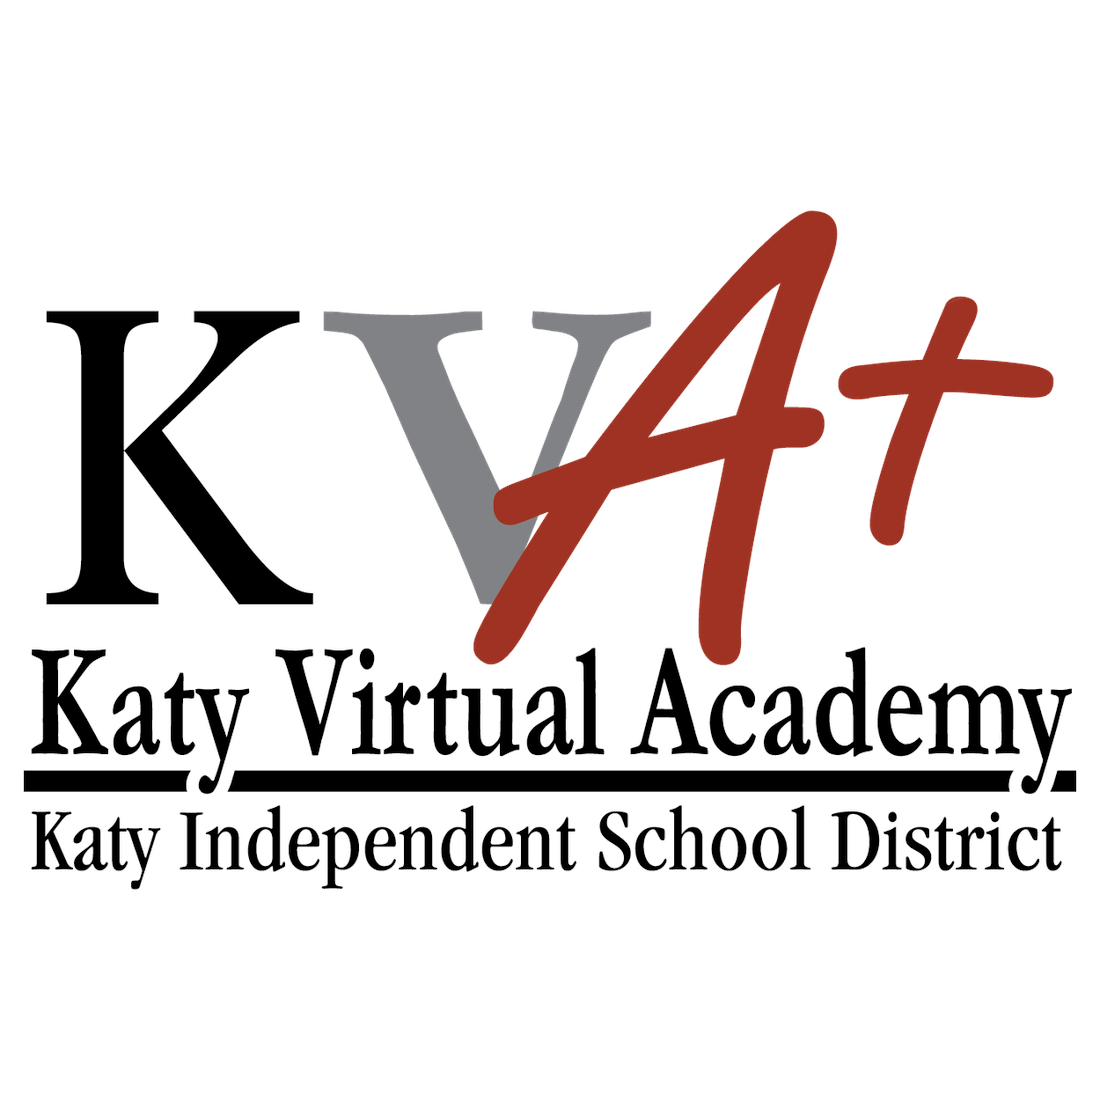 Katy Isd On Twitter Check Out The Latest Edition Of The Katyvirtualacademy Newsletter Read More Information On Kva School Supplies Technology Important Dates To Remember And More Https T Co Y8kelekjvf Katyisd Https T Co Jntk7yvfls